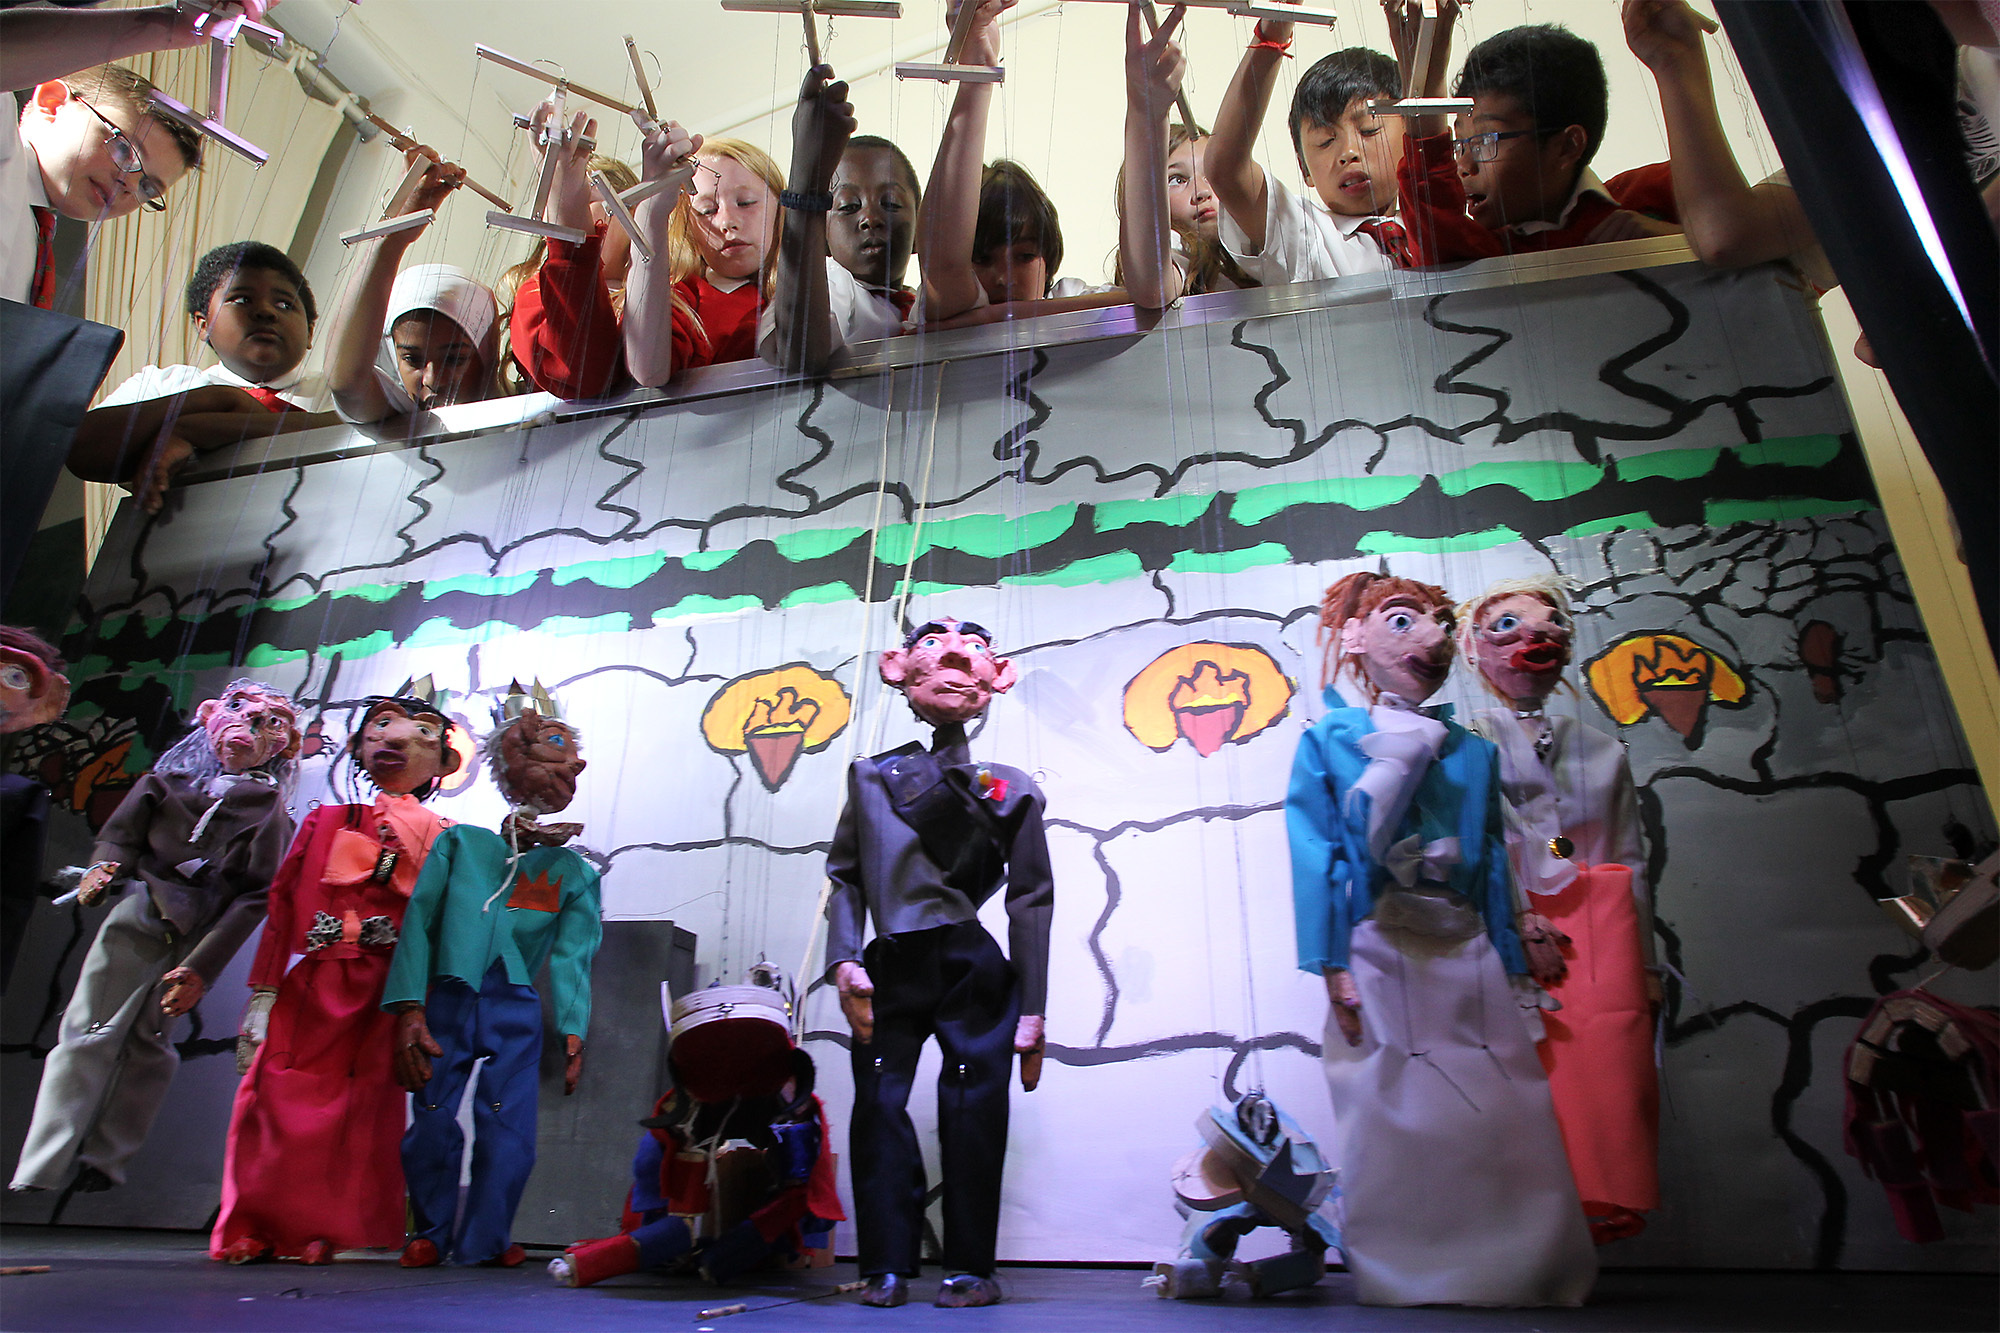 Pupils from year 6 at Orchard Meadow Primary School performing a version of the Brothers Grimm's story The Tinder Box with the Young People's Puppet Theatre at the Story Museum in Oxford in 2016